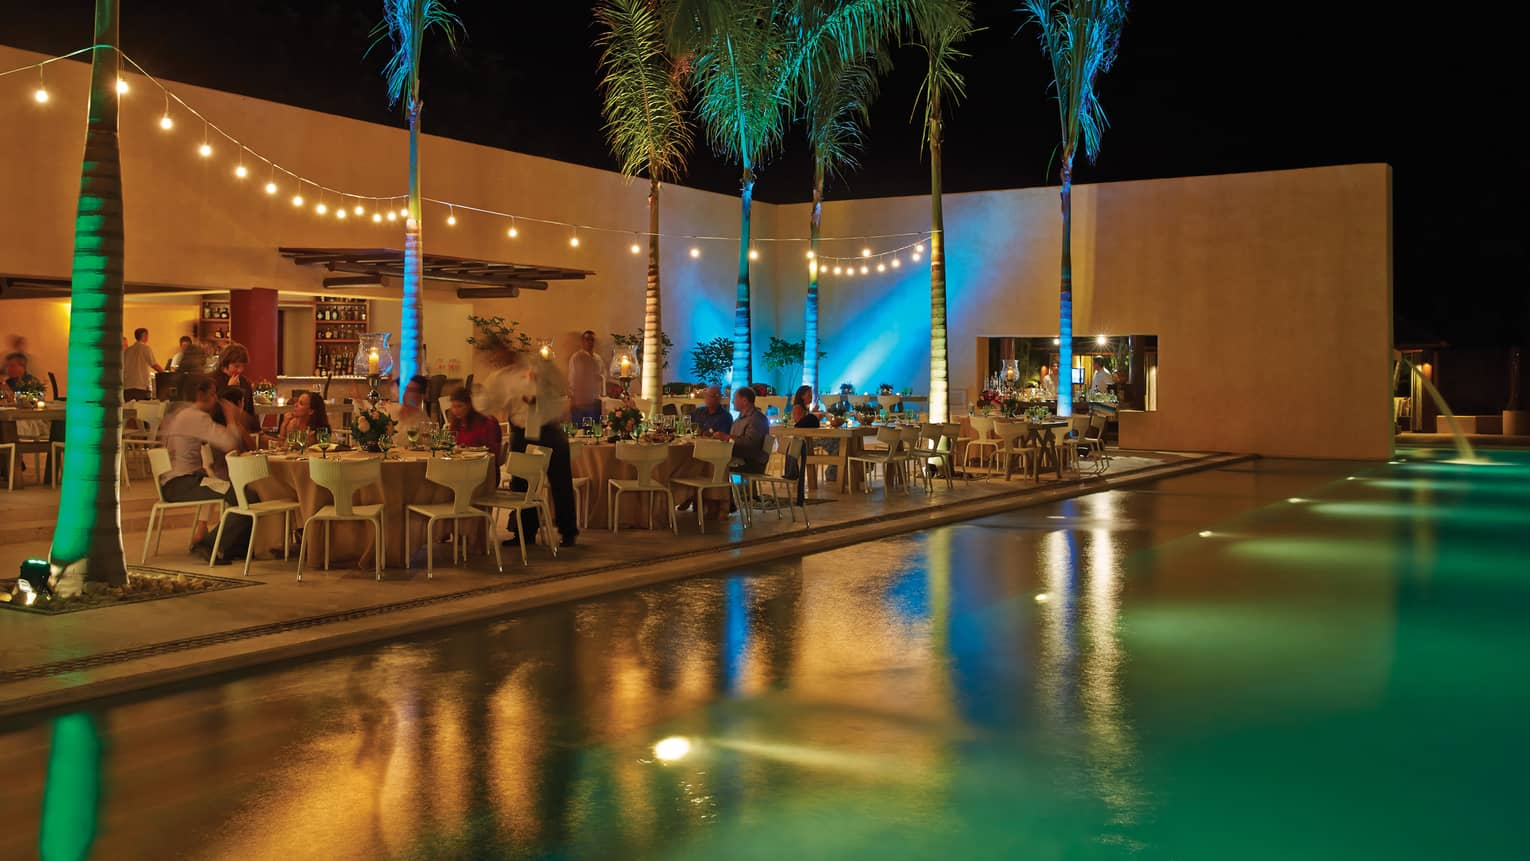 Banquet, colourful lights and palm trees along modern Tamai swimming pool at night